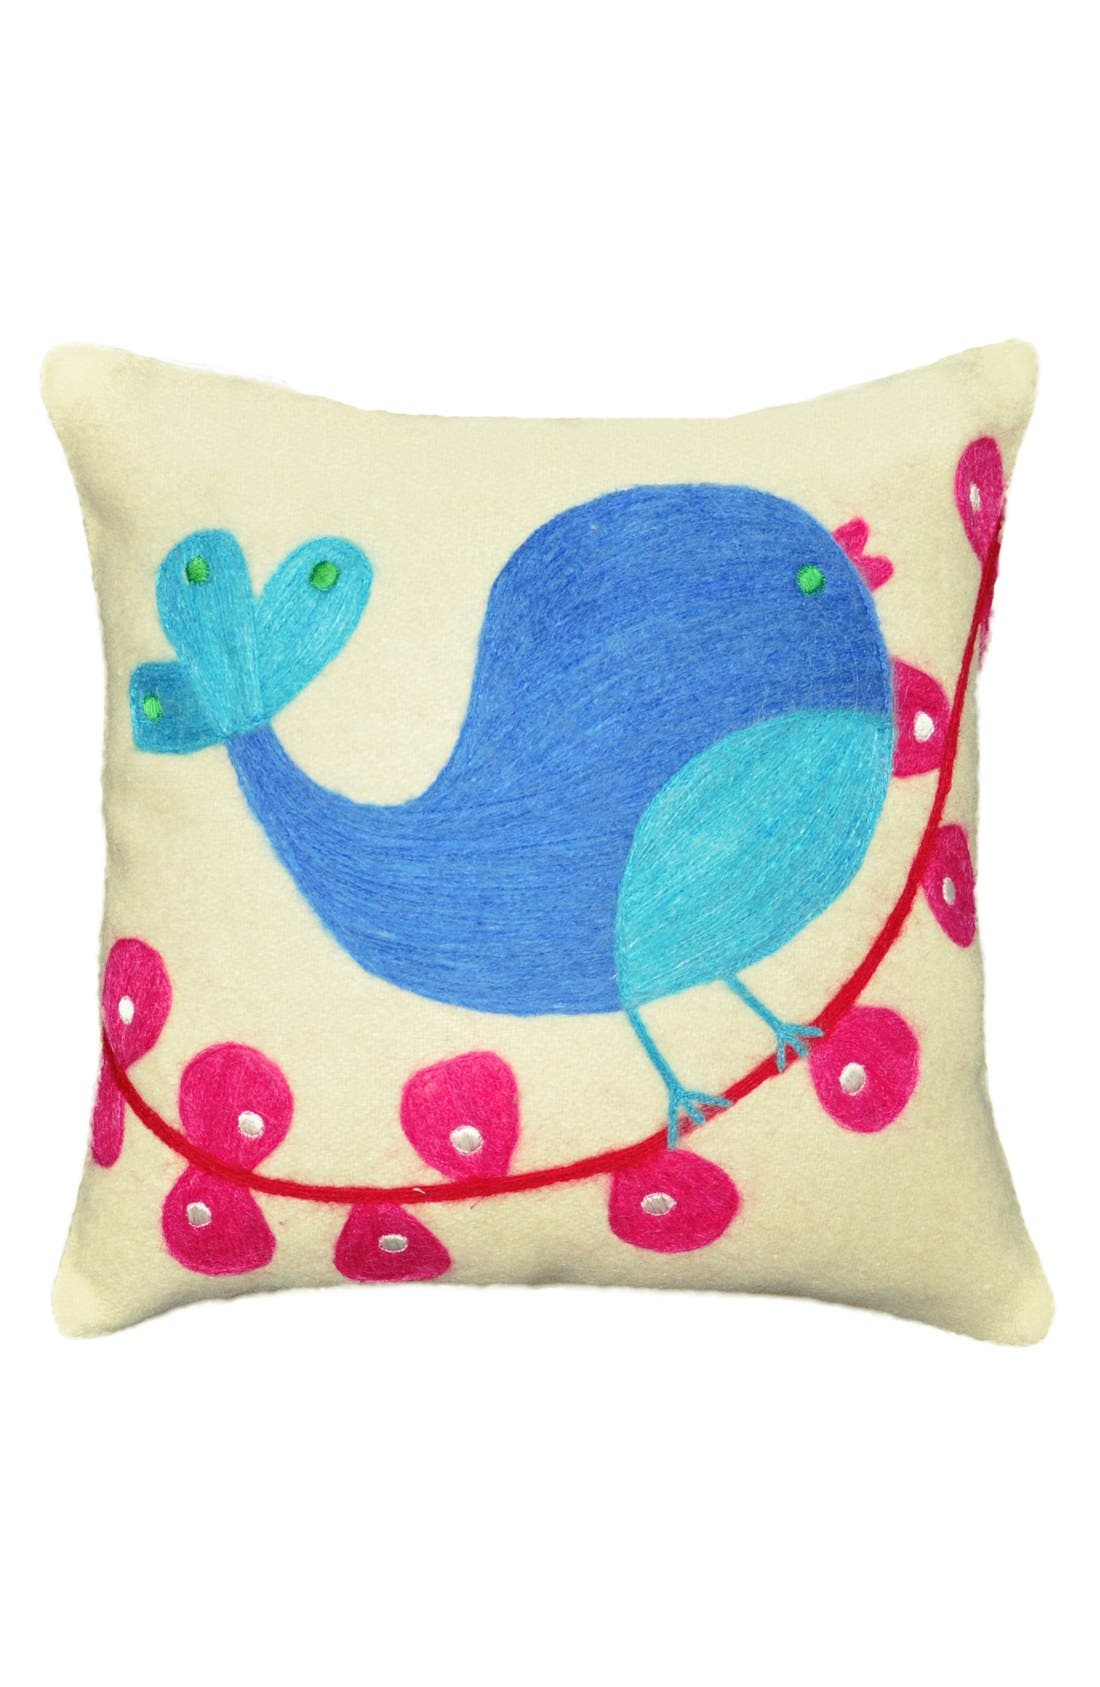 Alternate Image 1 Selected - Amity Home Accent Pillow